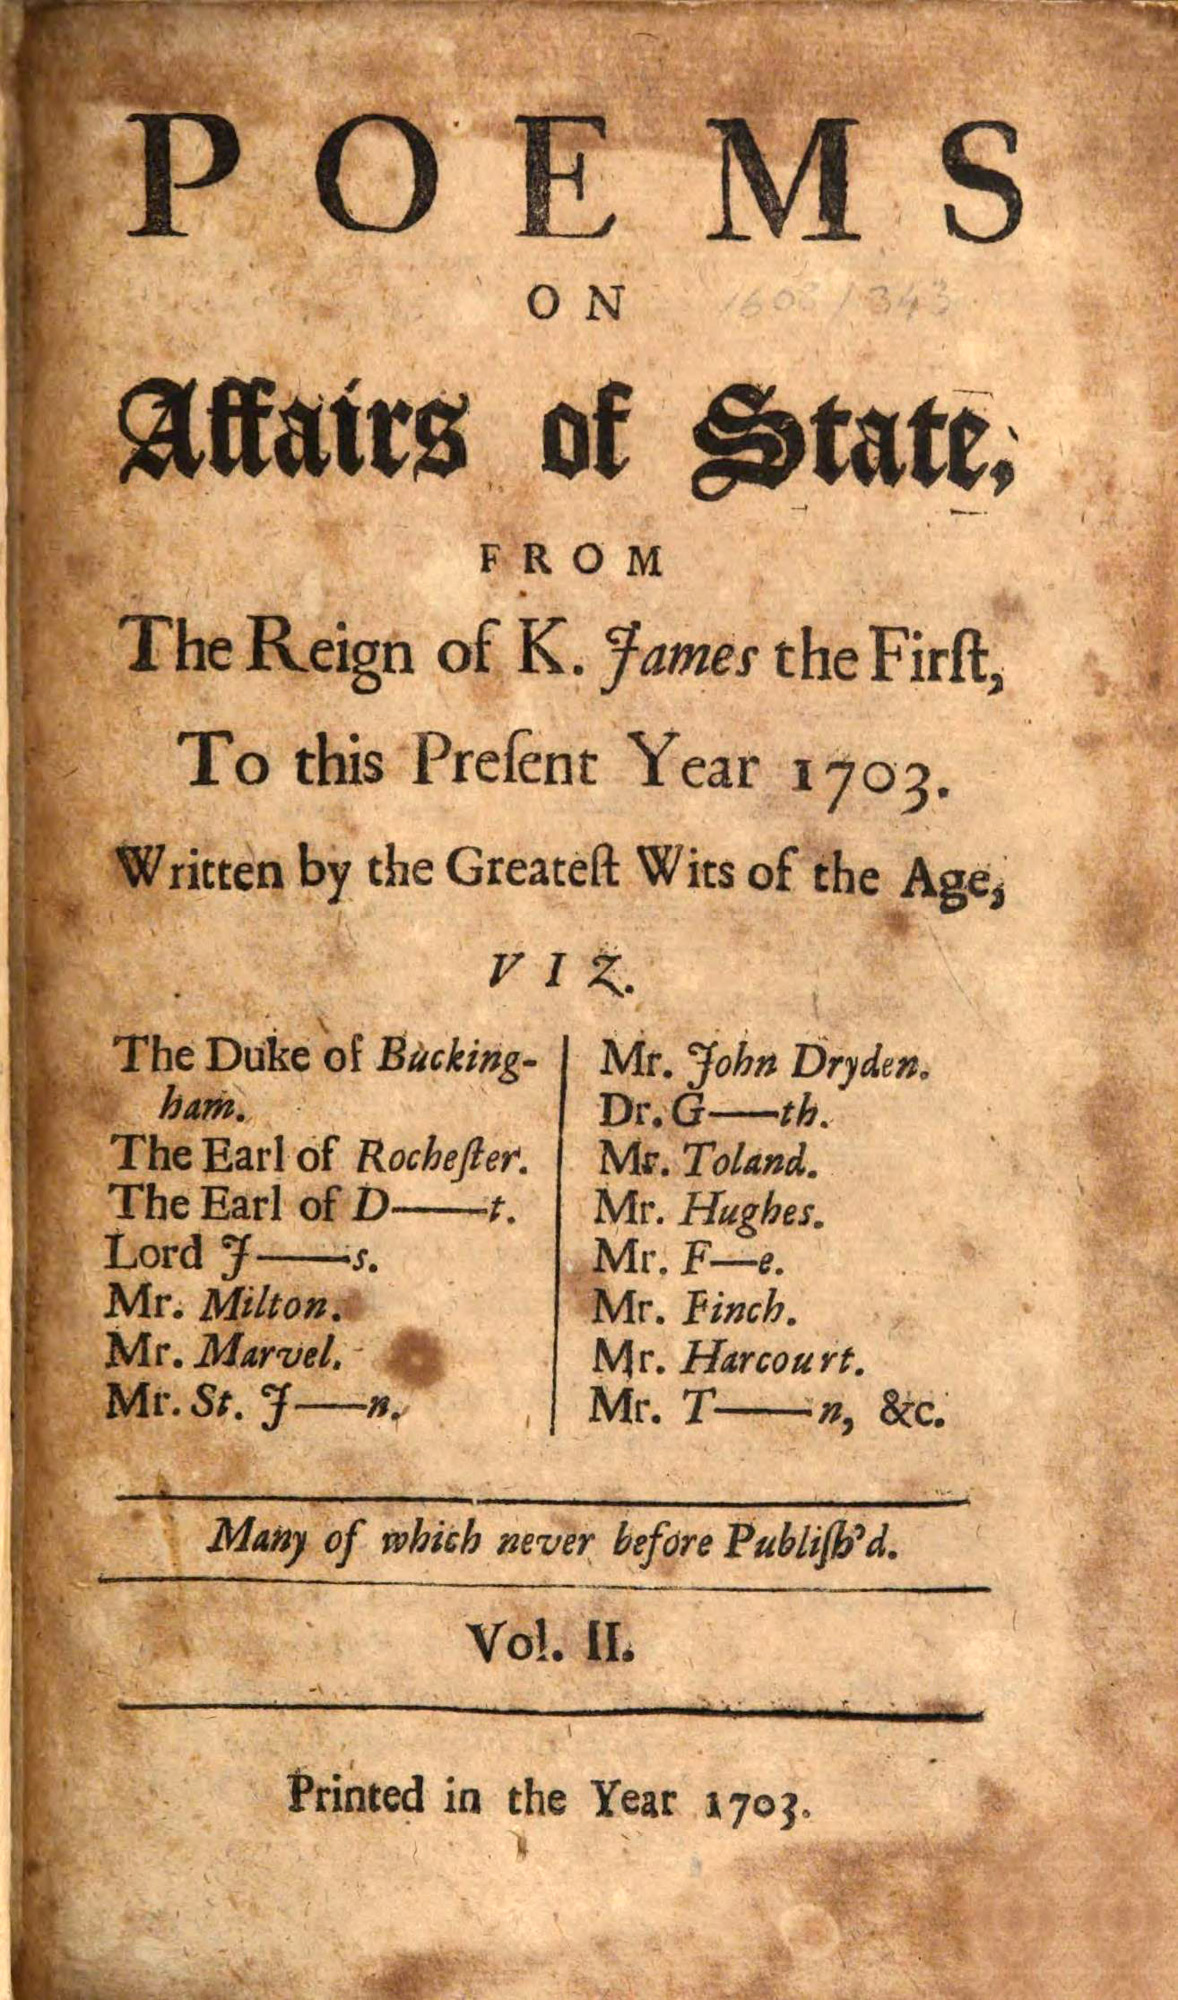 Poems on Affairs of State, 1703